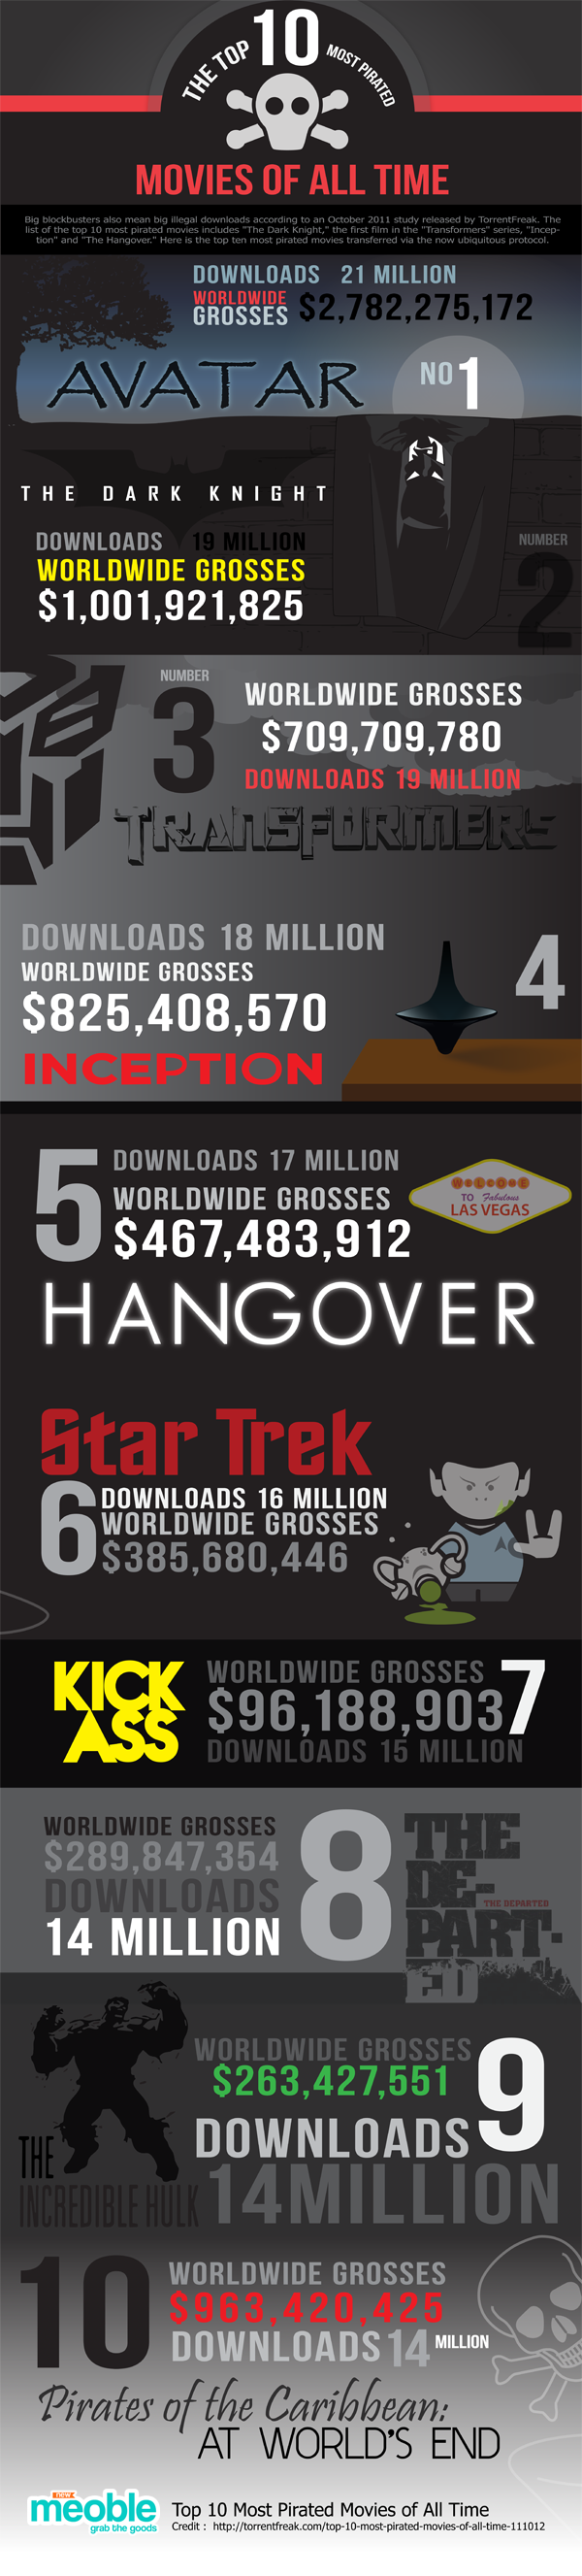 Top-10-Most-Pirated-Movies-of-All-Time-Infographic